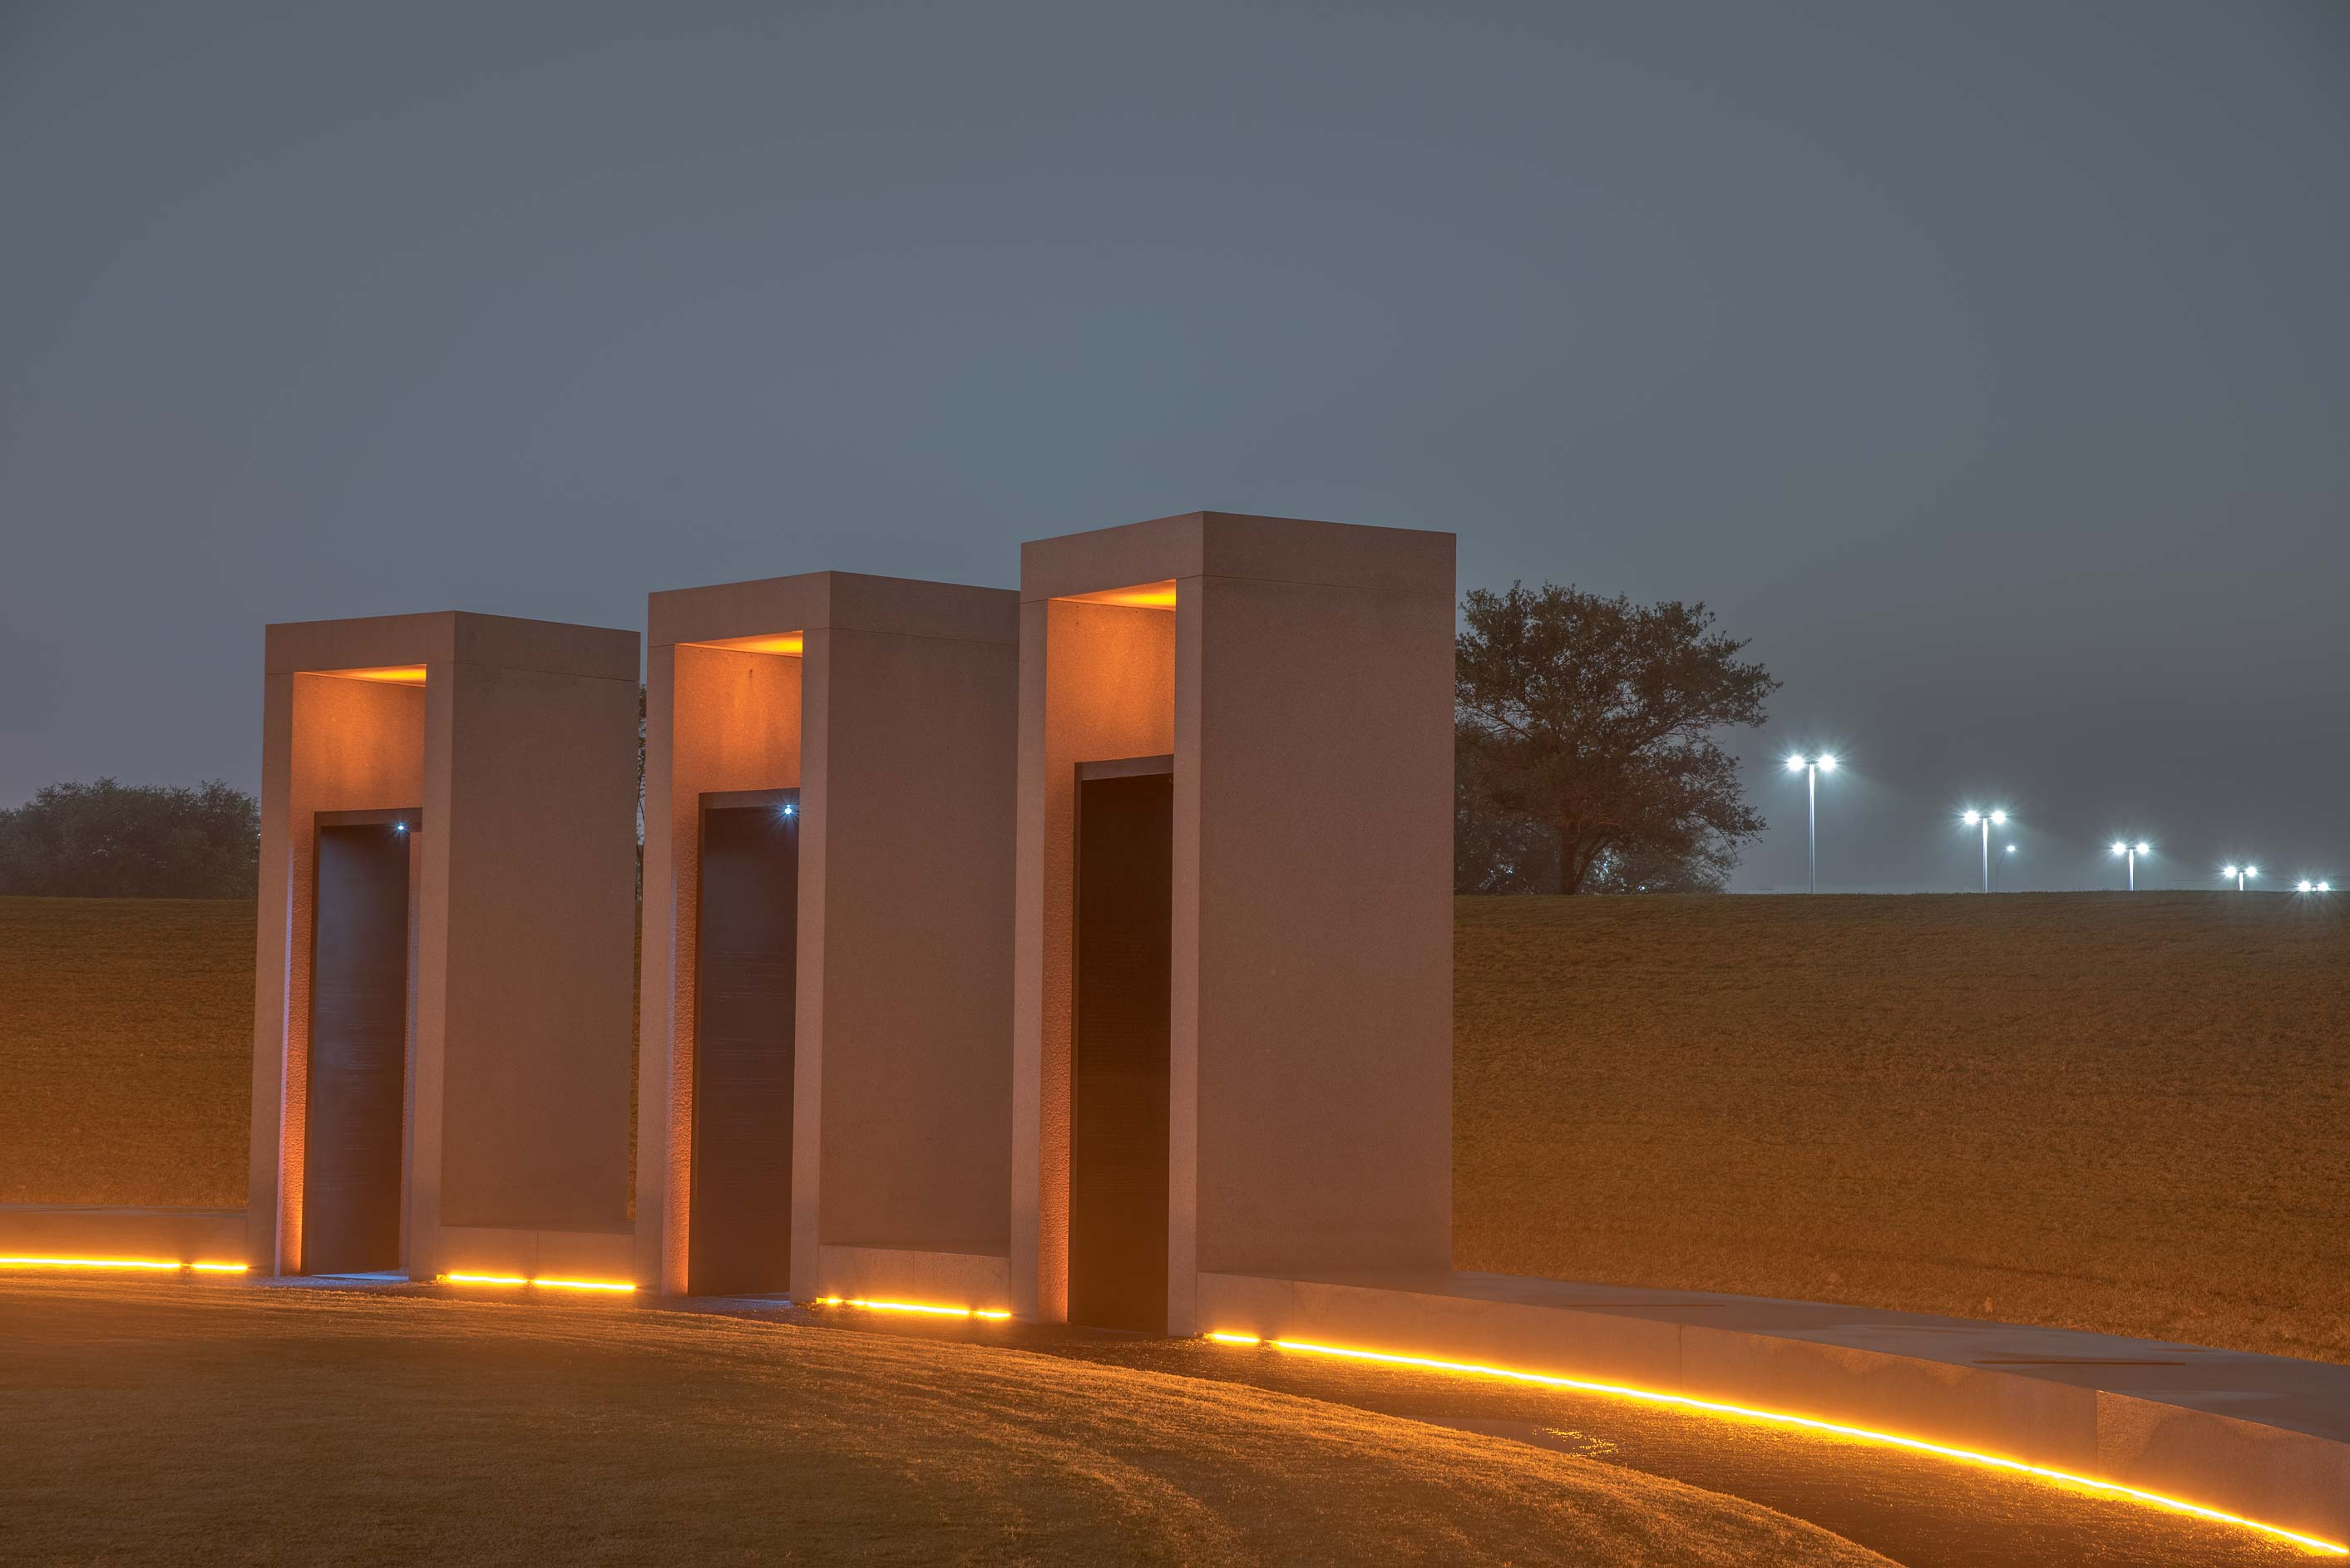 Portals of Bonfire Memorial on campus of Texas A&M University. College Station, Texas